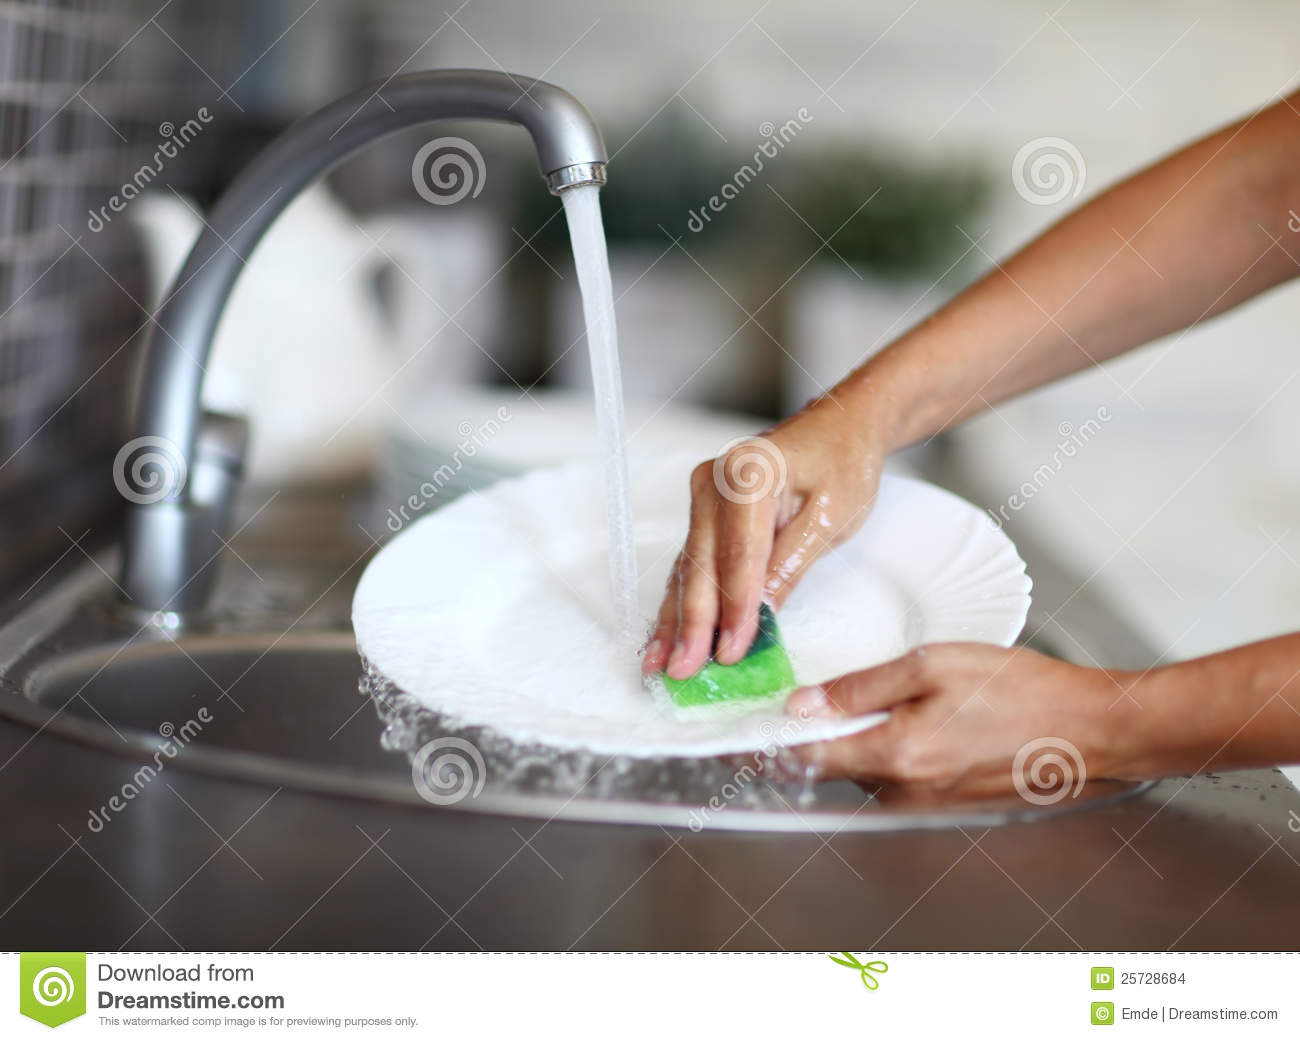 Woman Washing Dishes In The Kitchen Sink Stock Images - Image ...